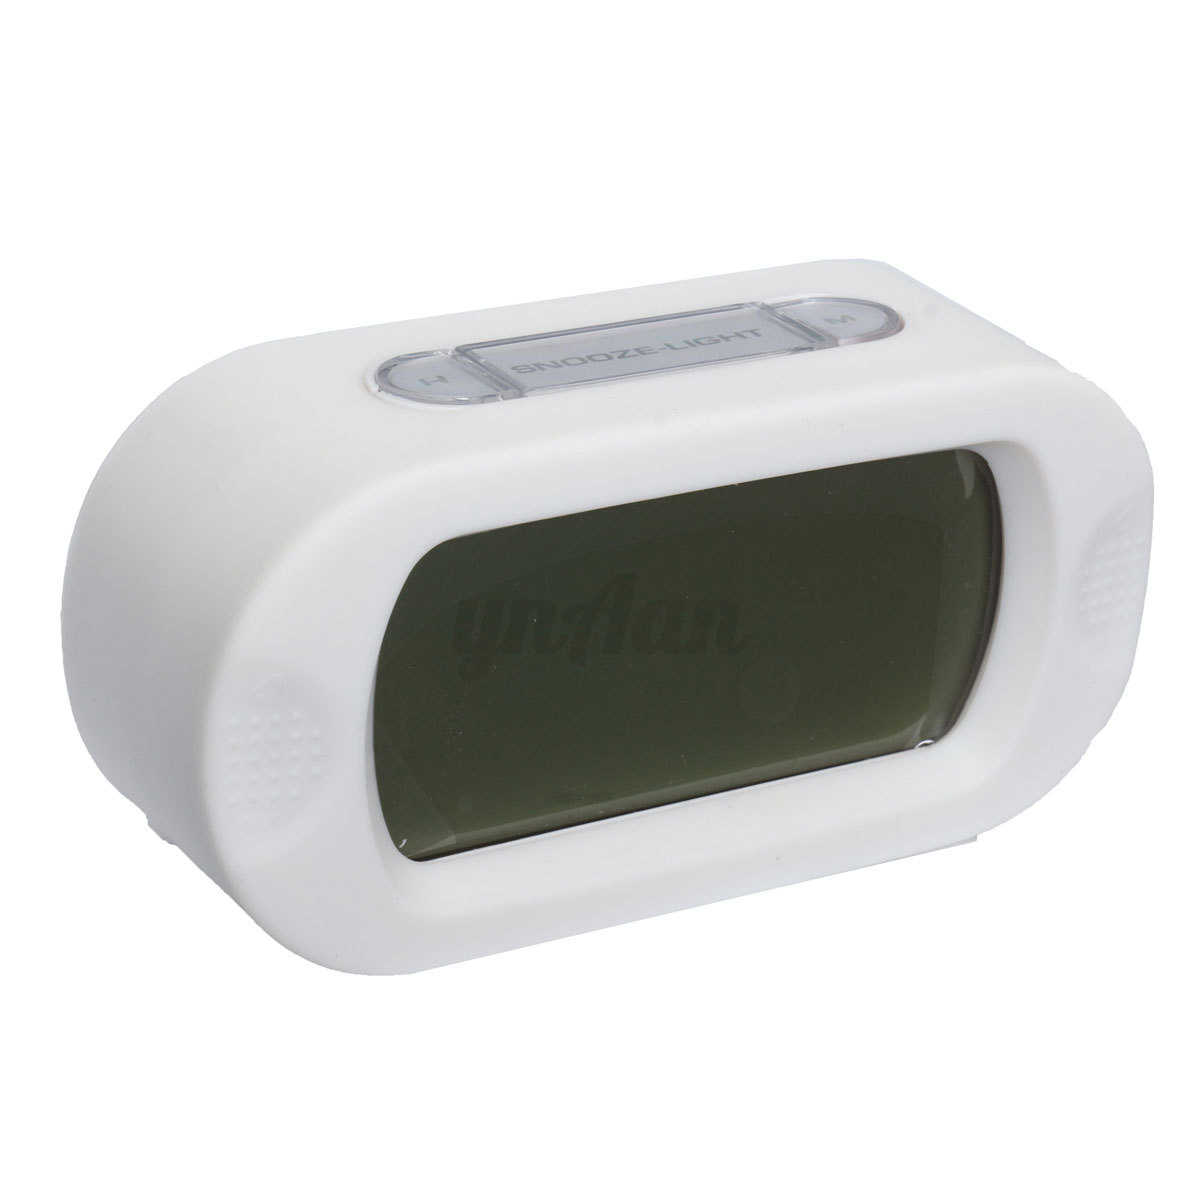 desktop alarm clock blue lcd display snooze battery operated digital lighted ebay. Black Bedroom Furniture Sets. Home Design Ideas